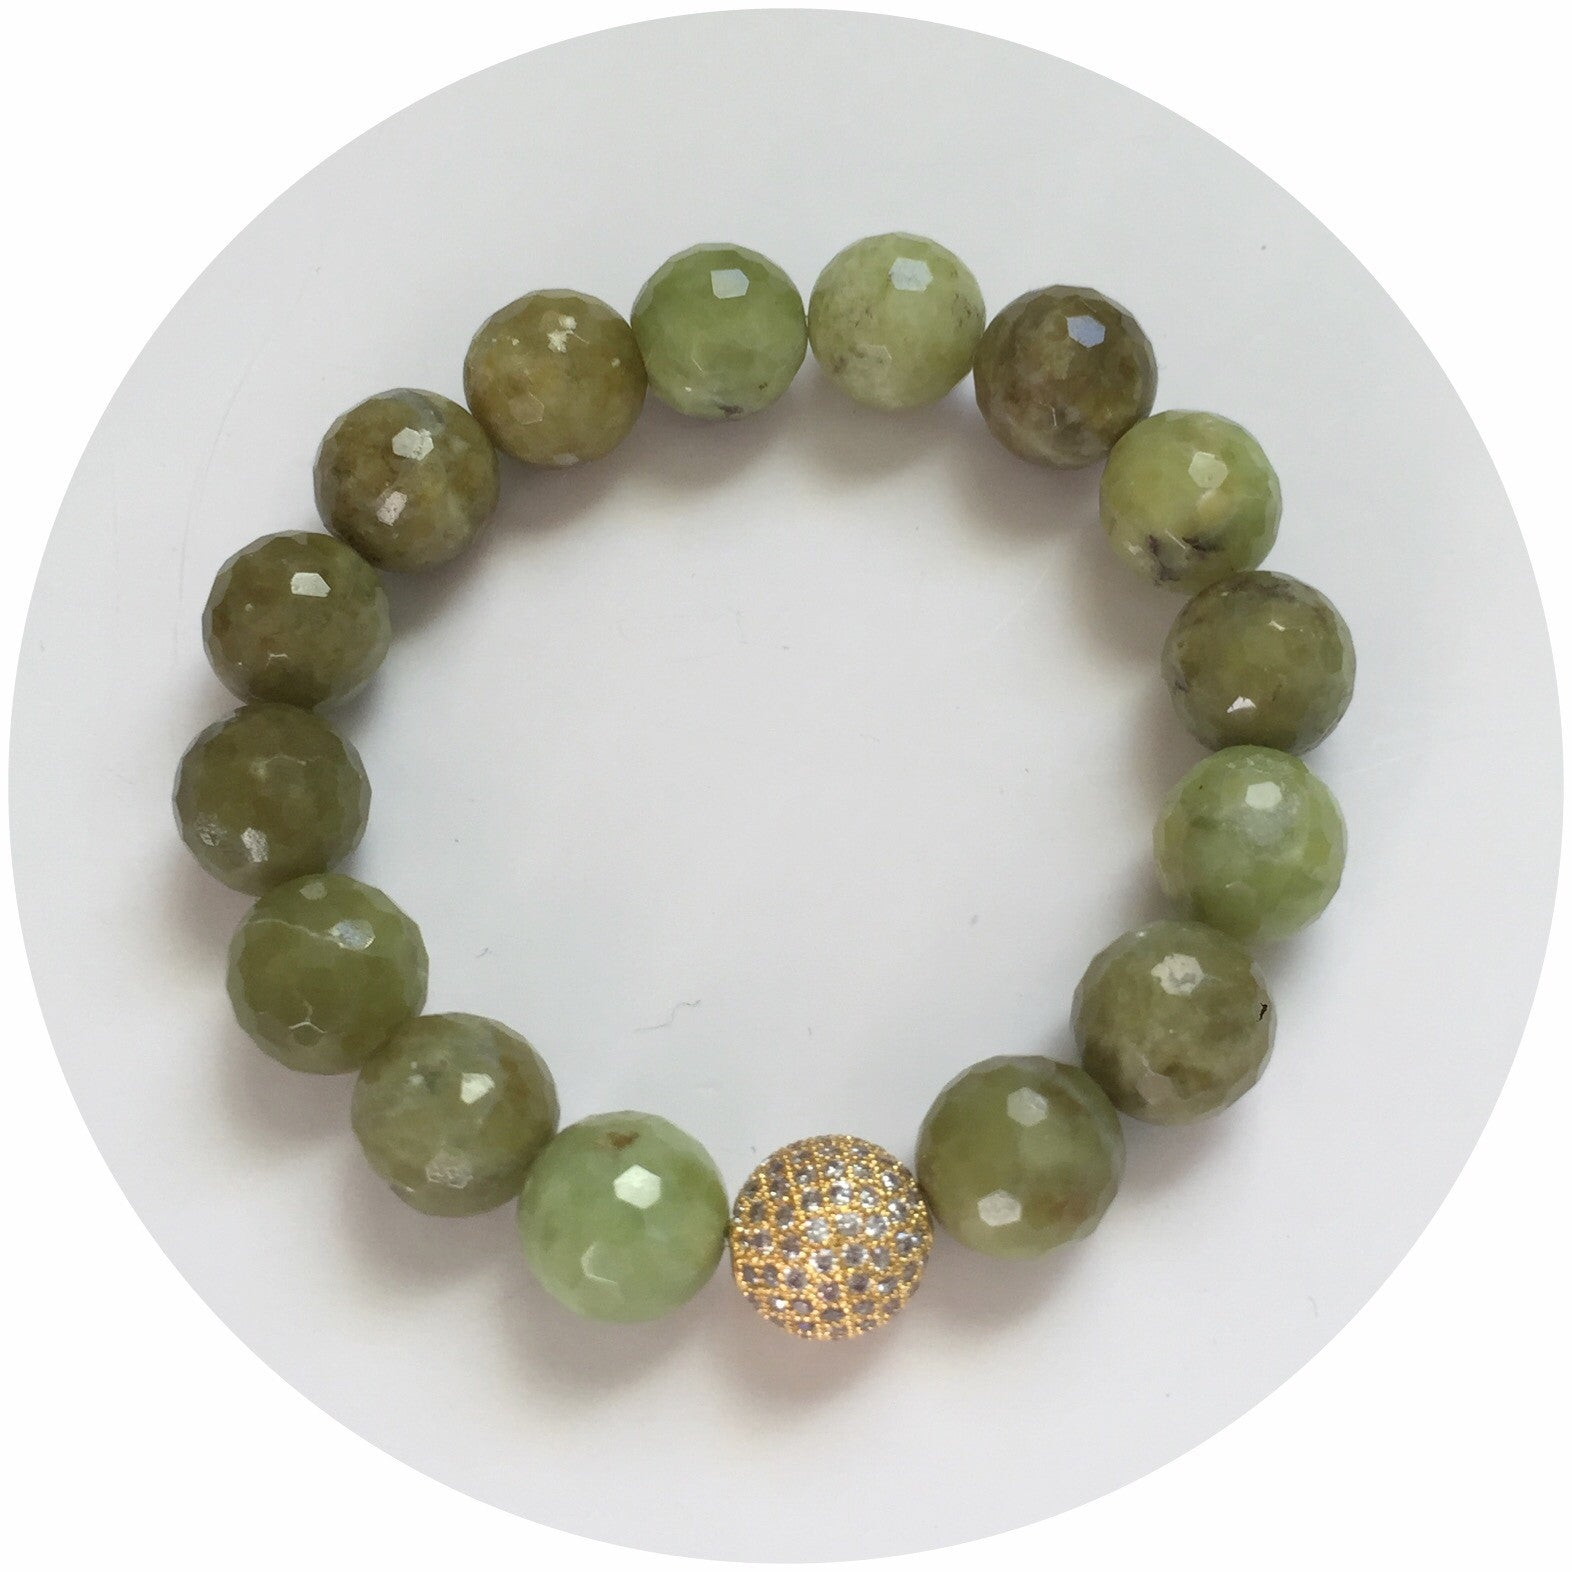 Green Garnet with Micro Pavé Gold - Oriana Lamarca LLC